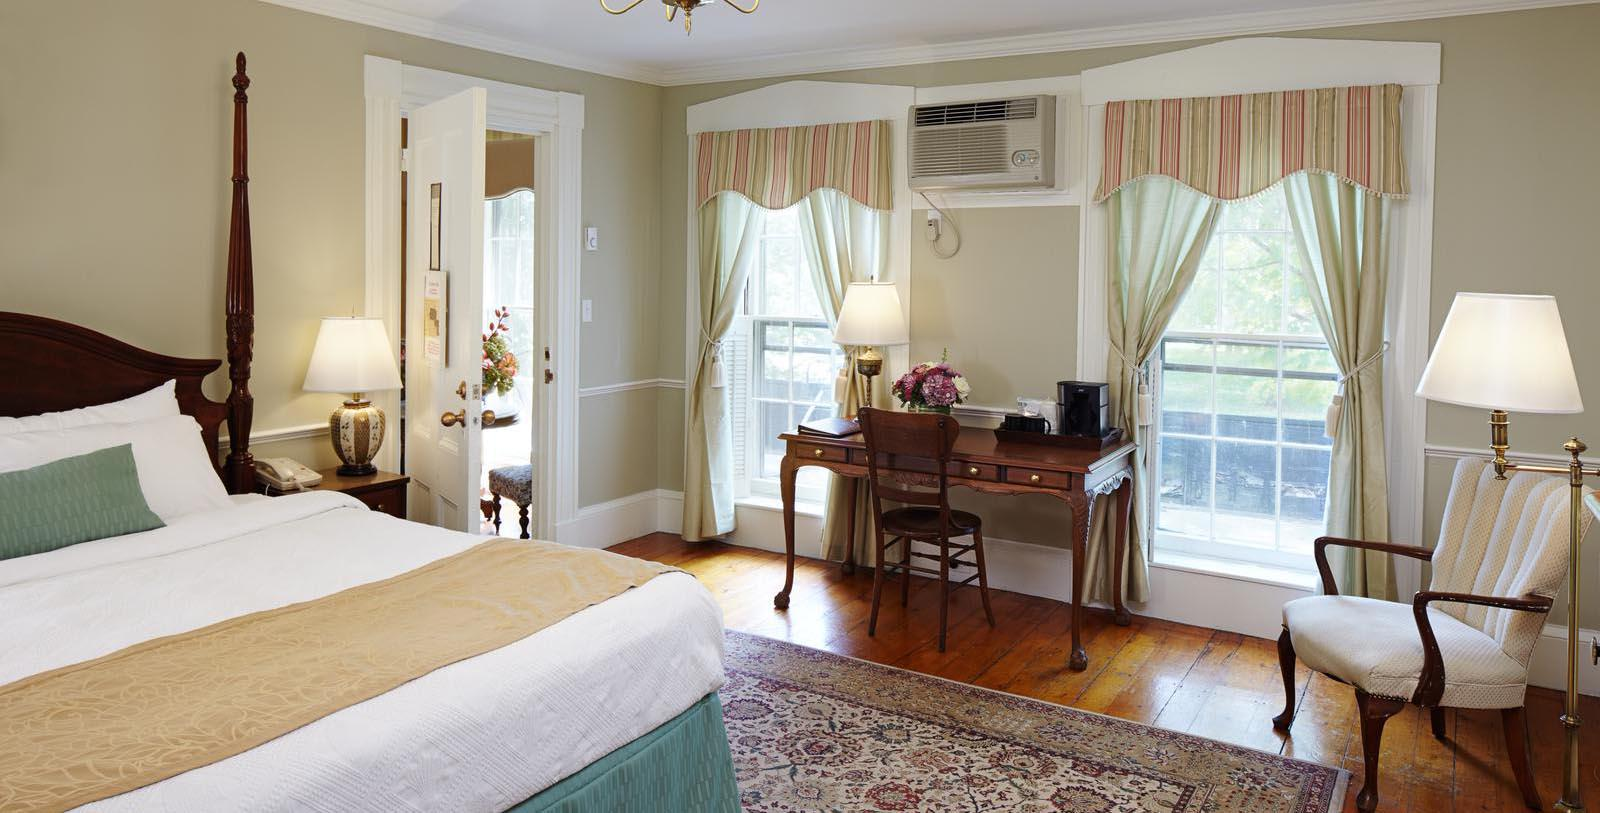 Image of Guestroom at Concord's Colonial Inn, 1716, Member of Historic Hotels of America, in Concord, Massachusetts Hot Deals